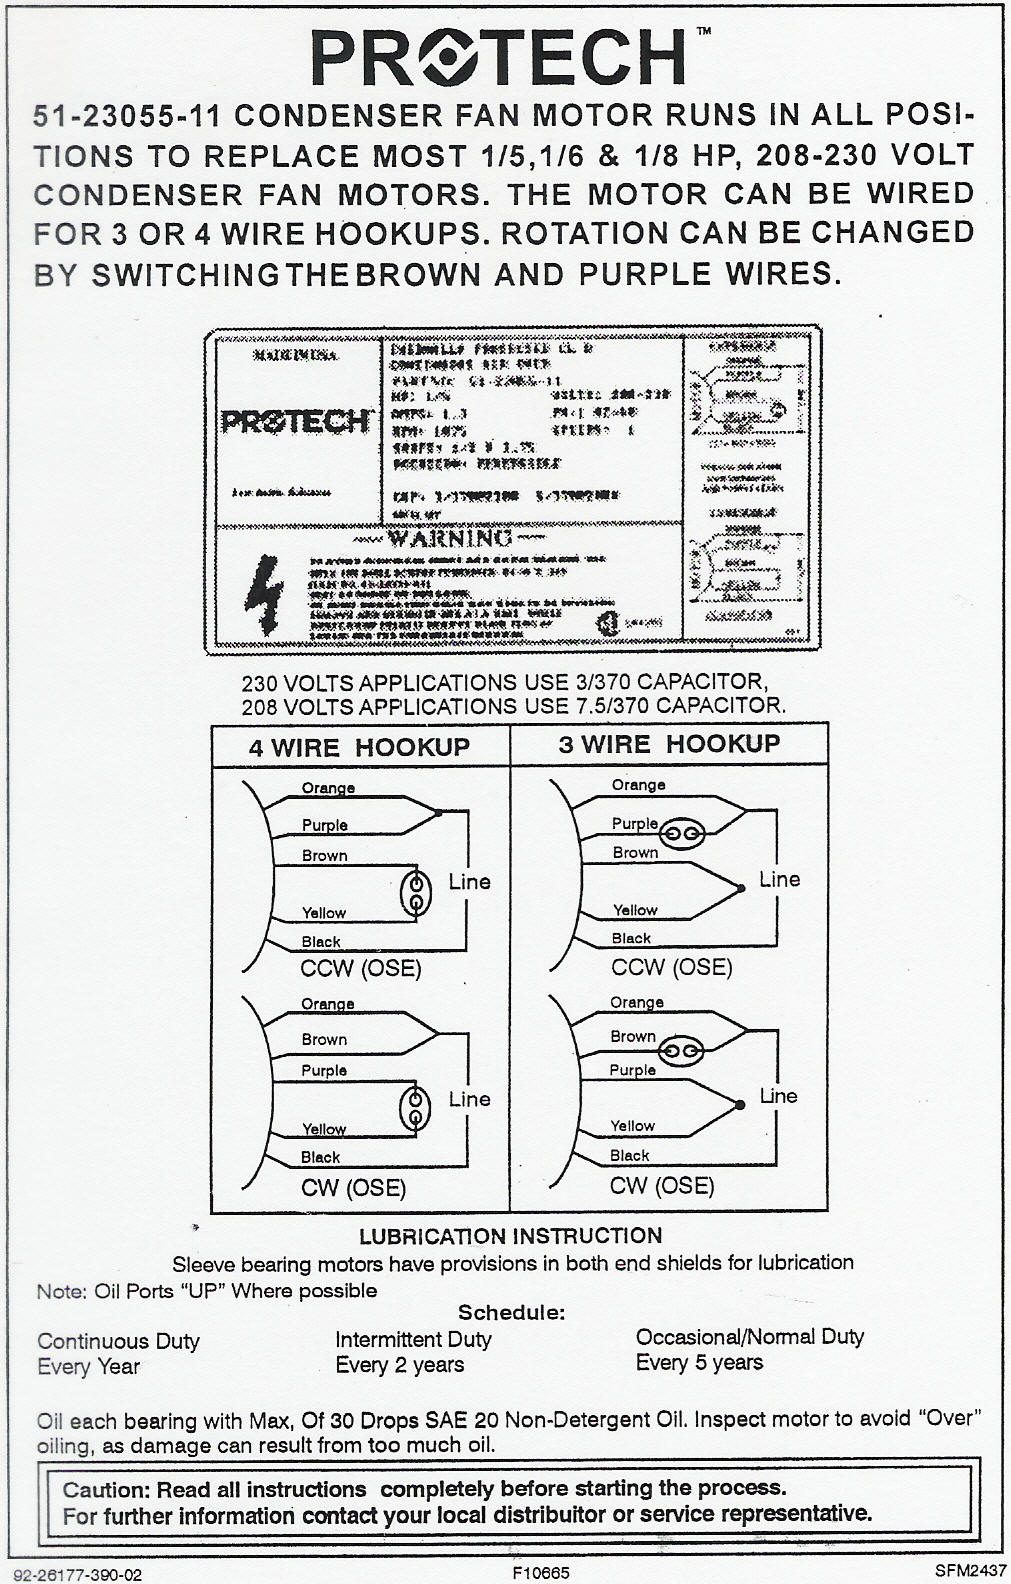 51 23055 11 wiring diagram rheem ruud condenser fan motor 51 23055 11 wiring diagram ac condenser fan motor wiring diagram at crackthecode.co